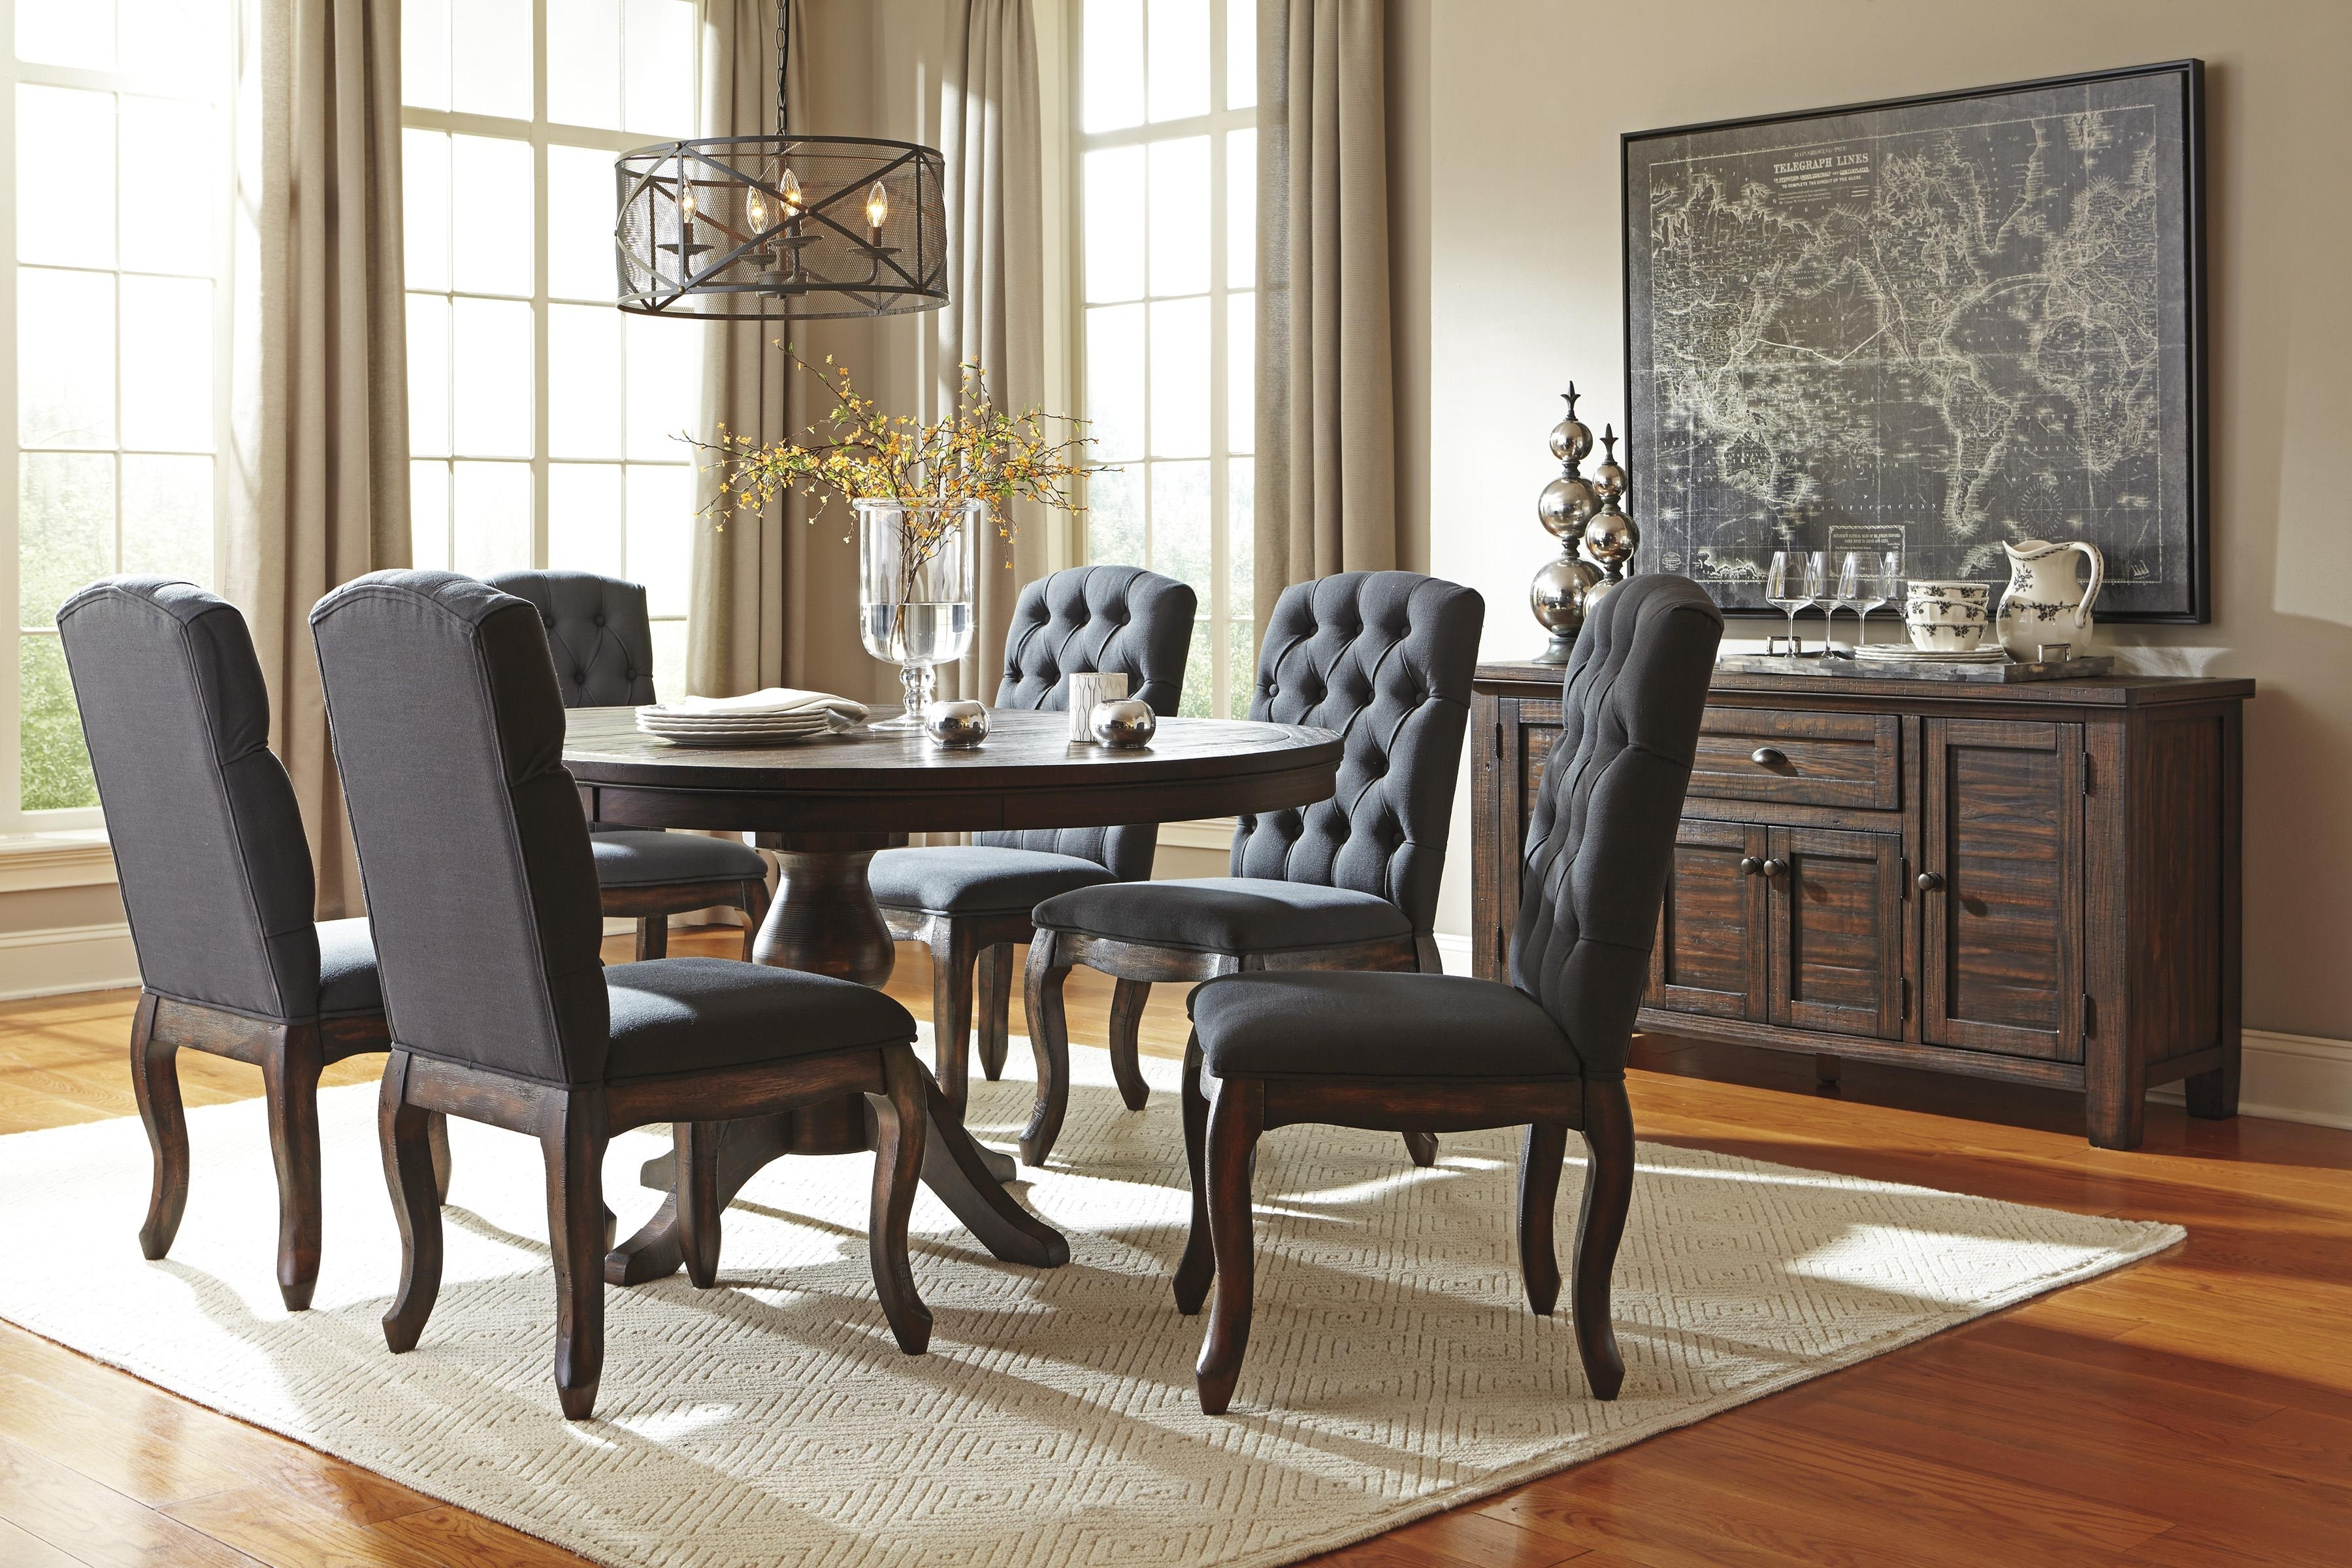 7 Piece Oval Dining Table Set With Upholstered Side Chairs Inside Recent Craftsman 9 Piece Extension Dining Sets With Uph Side Chairs (View 7 of 20)